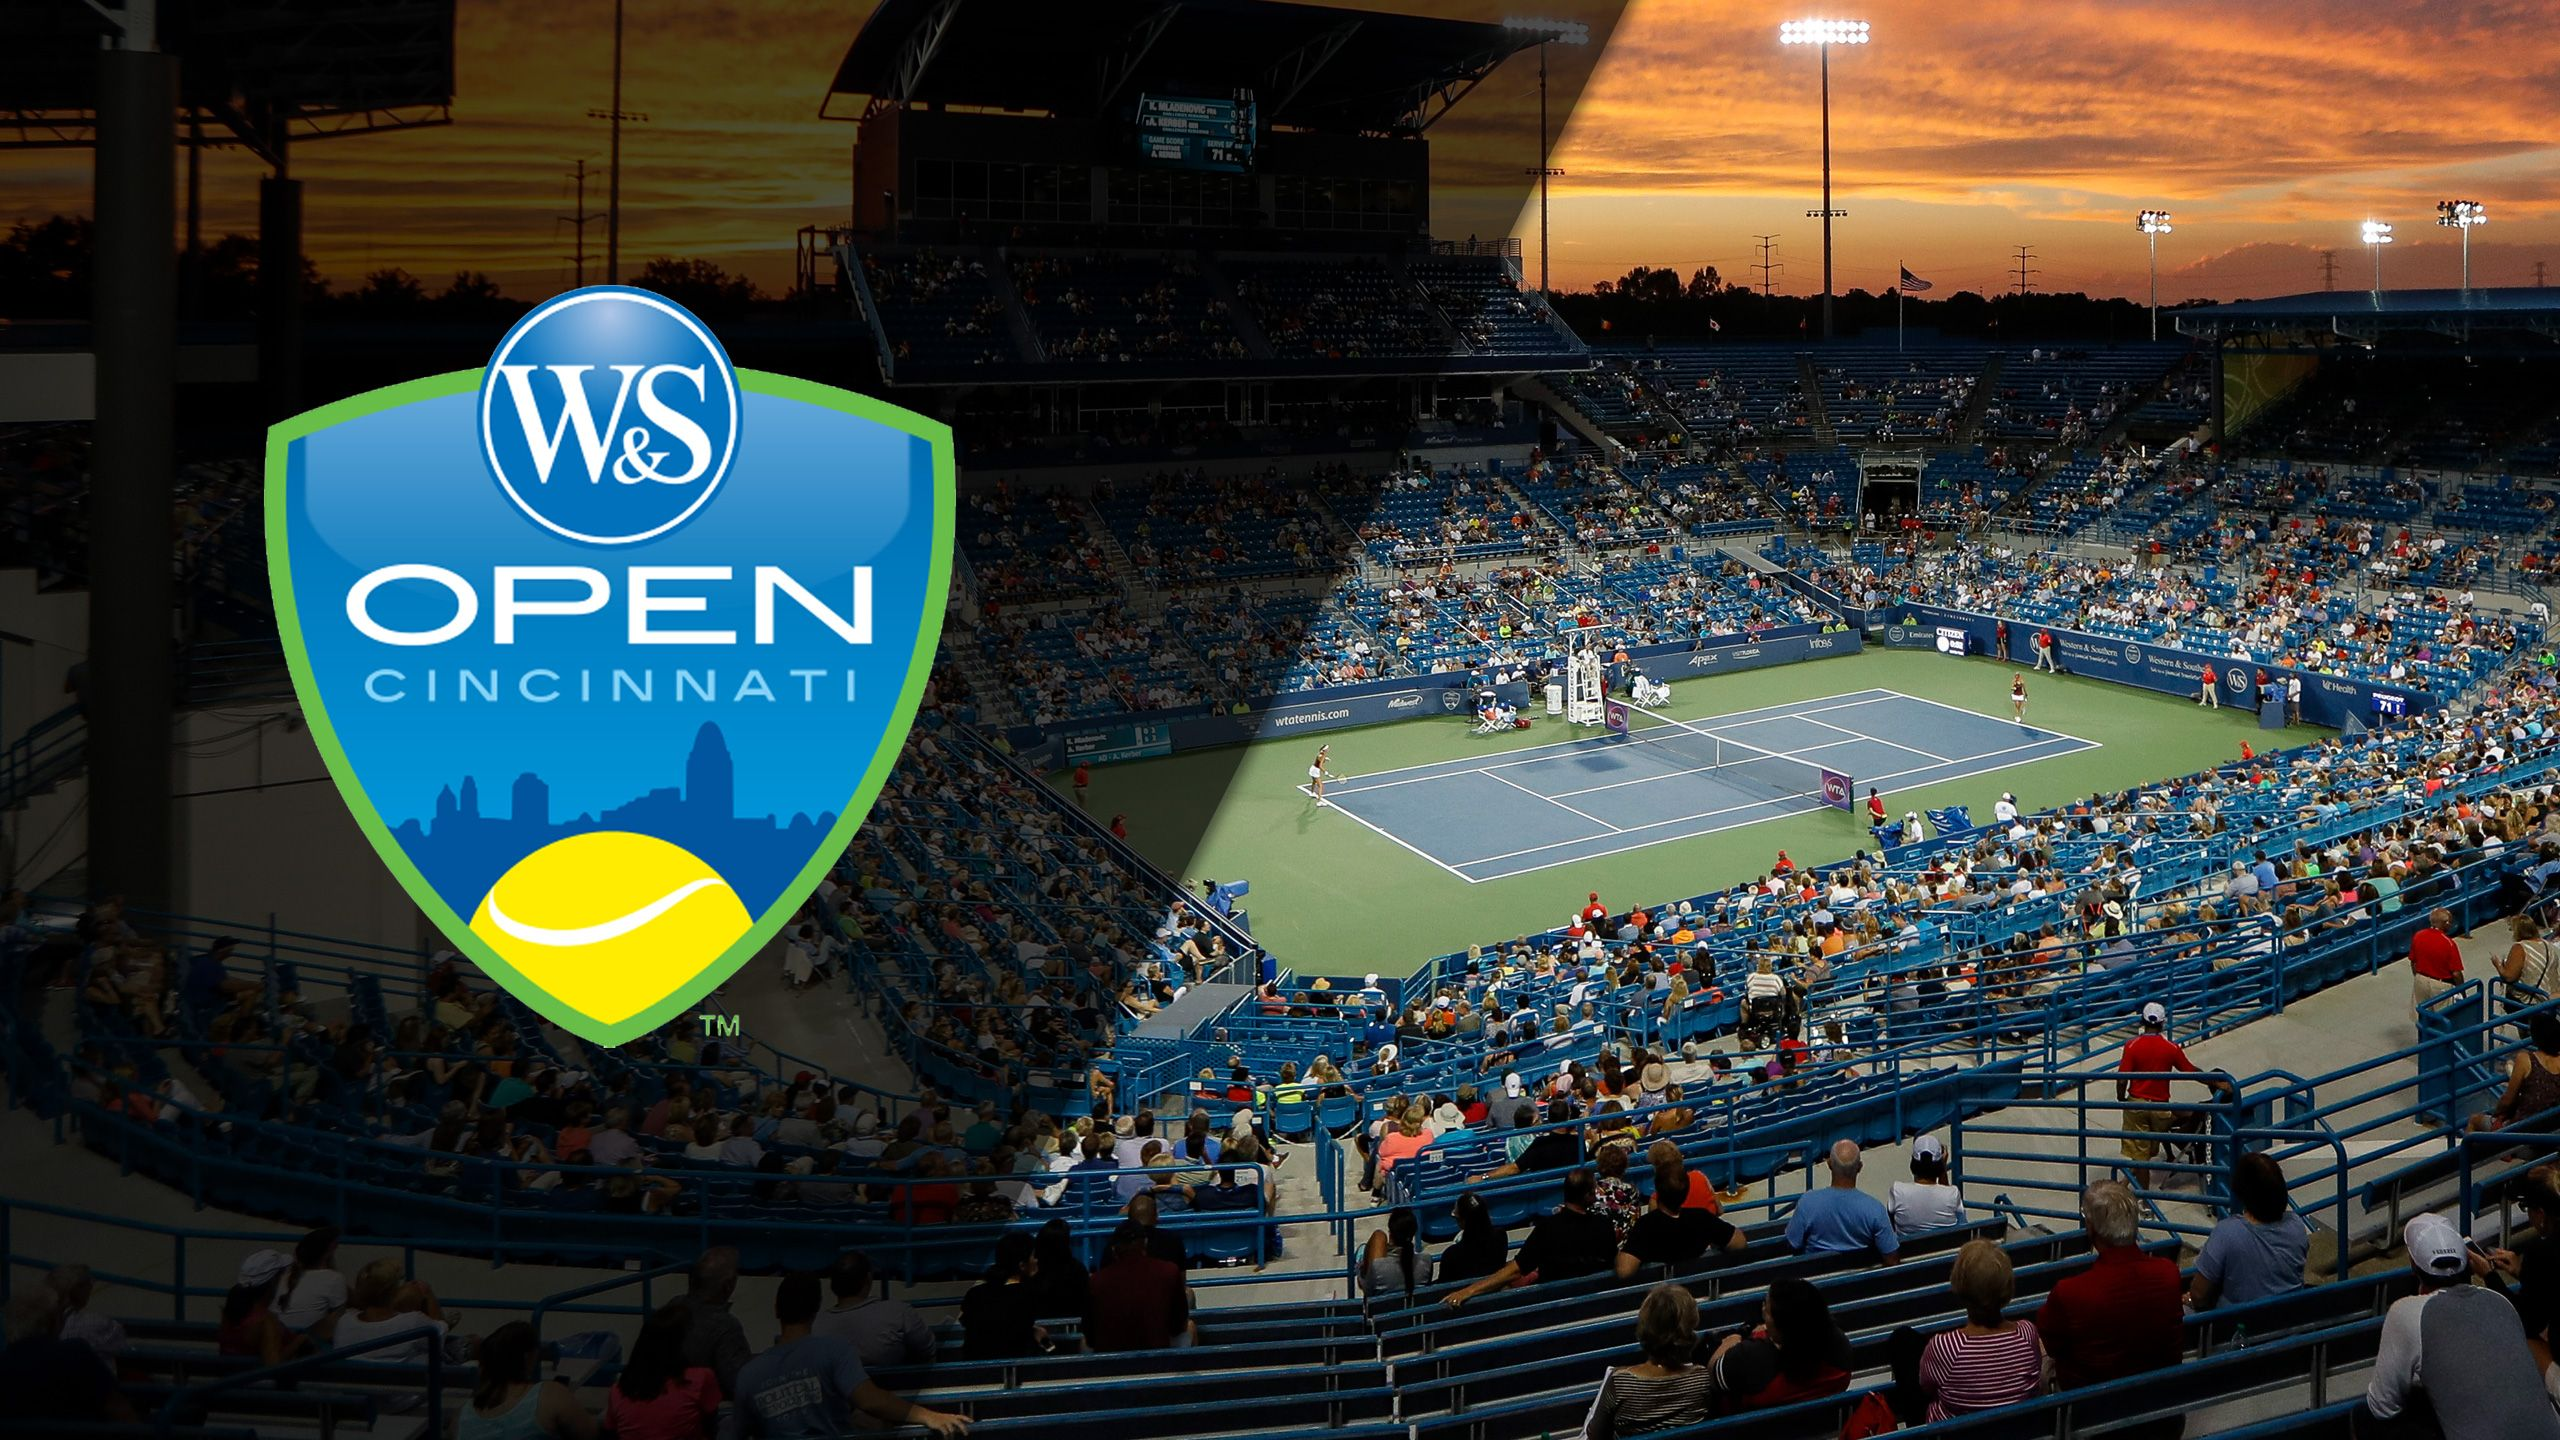 2018 US Open Series - Western & Southern Open (Women's Championship)